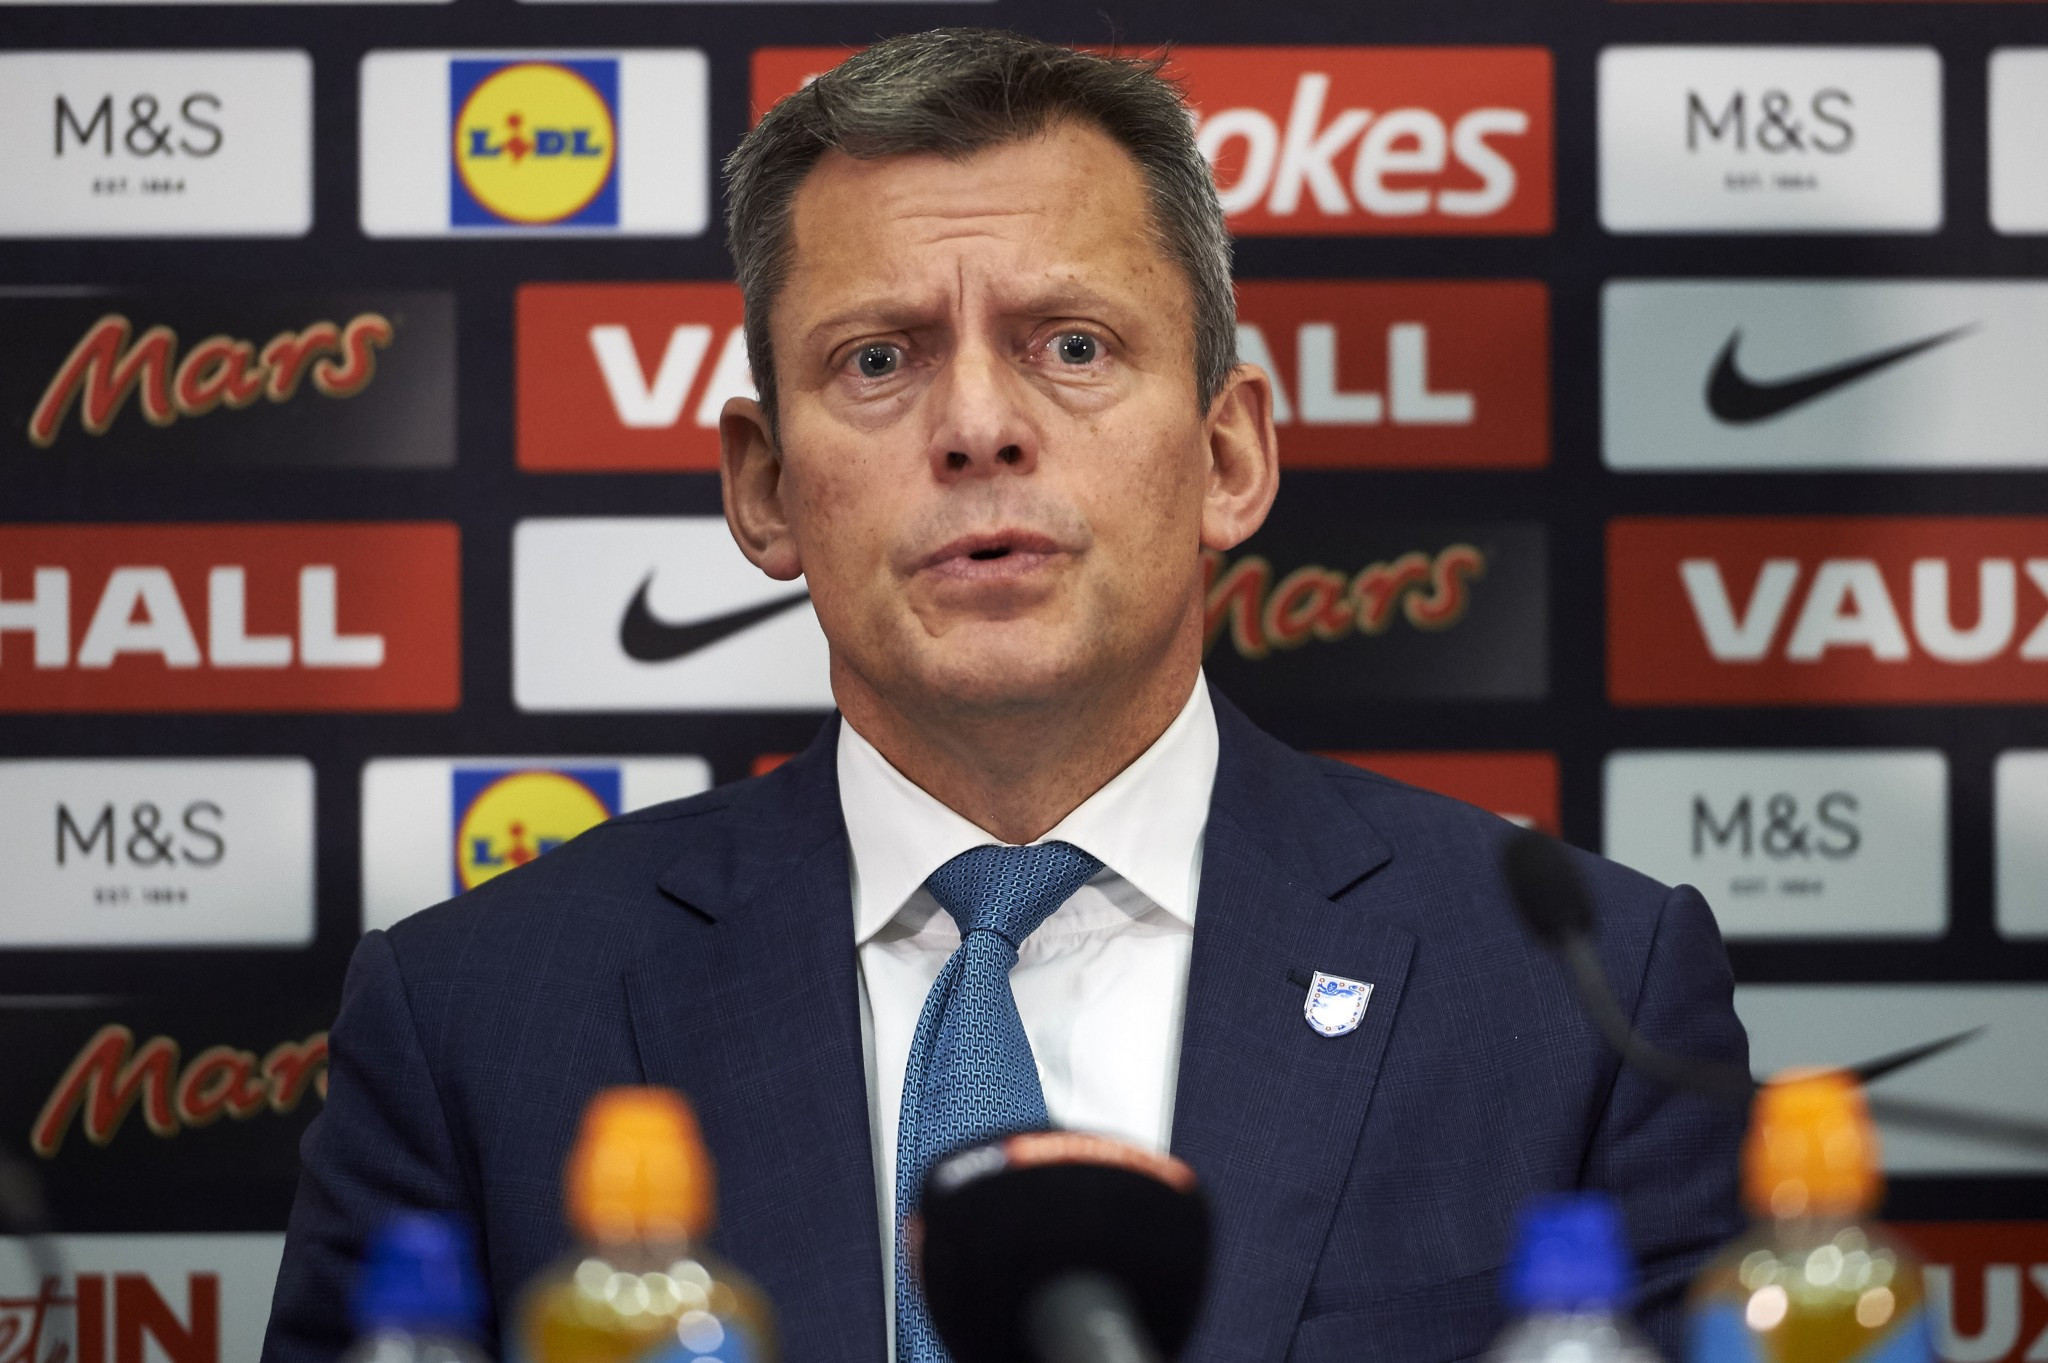 FA chief executive hopeful of sending a British women's team to Tokyo 2020